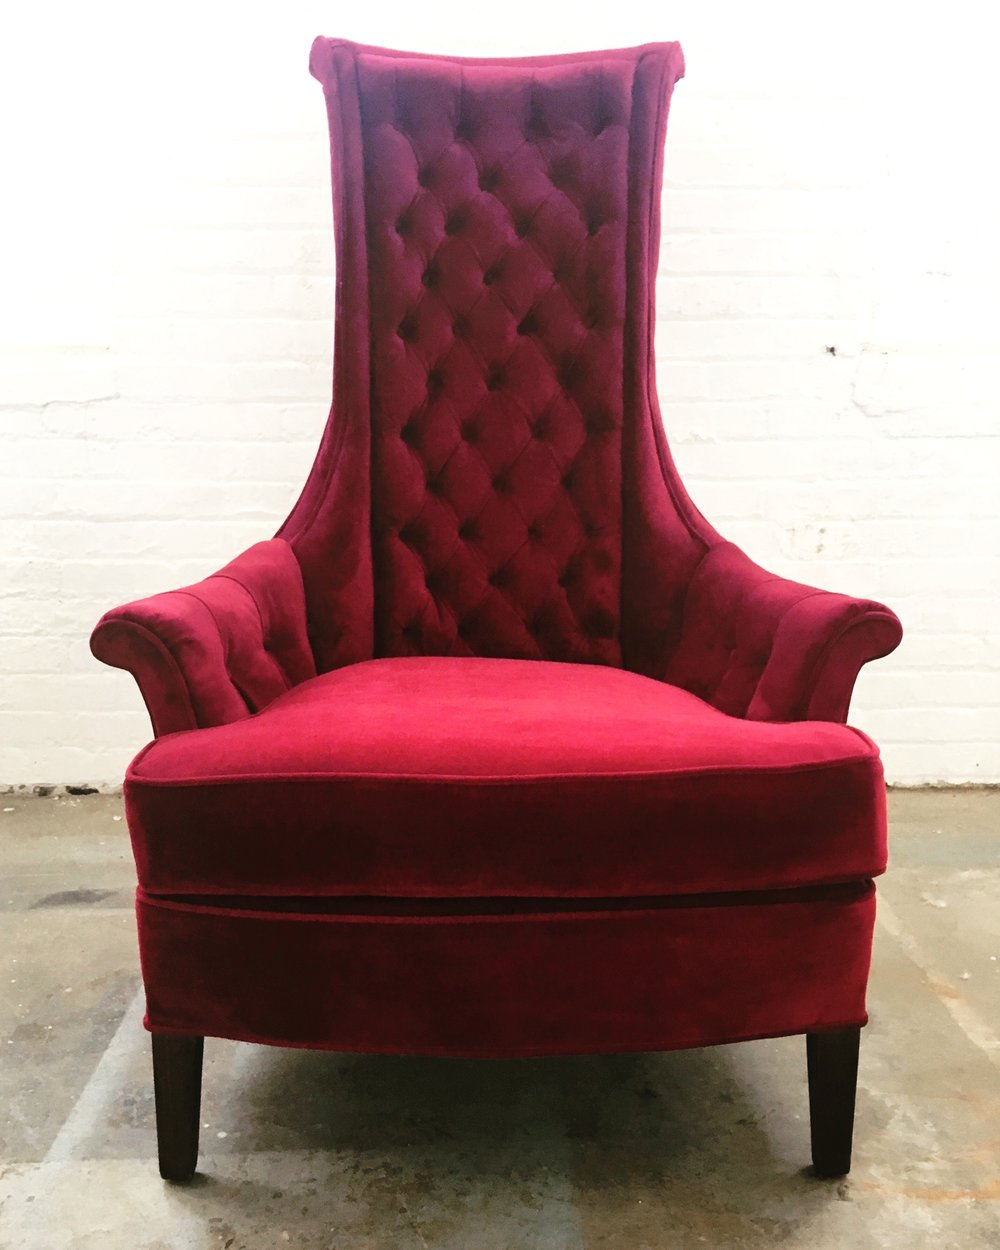 Recovered Interior Throne Chair